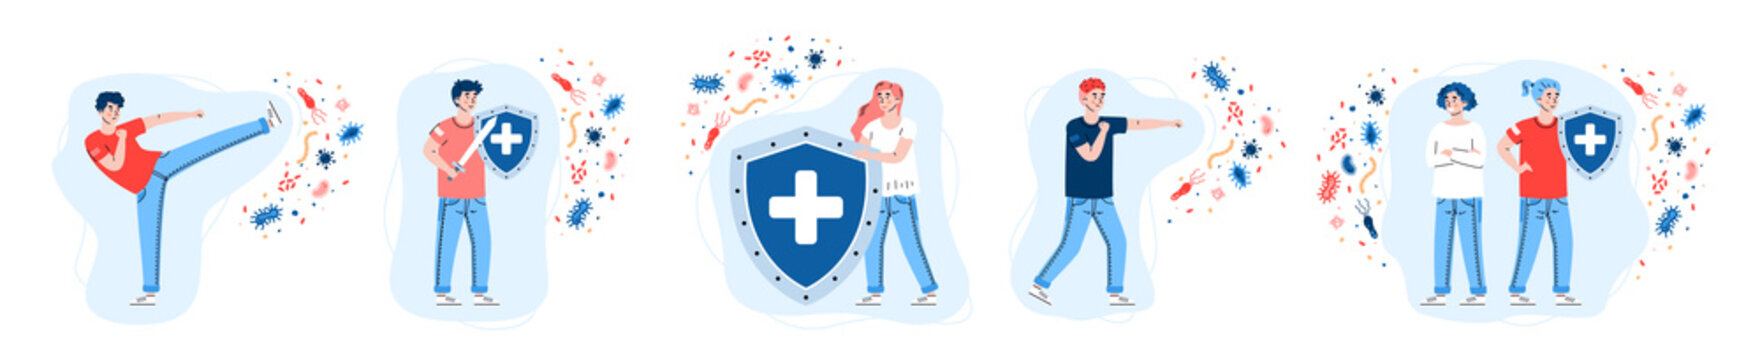 Set of people reflecting with viral attack by strong immune system, cartoon vector illustration isolated on white background. Immune system defence concept.